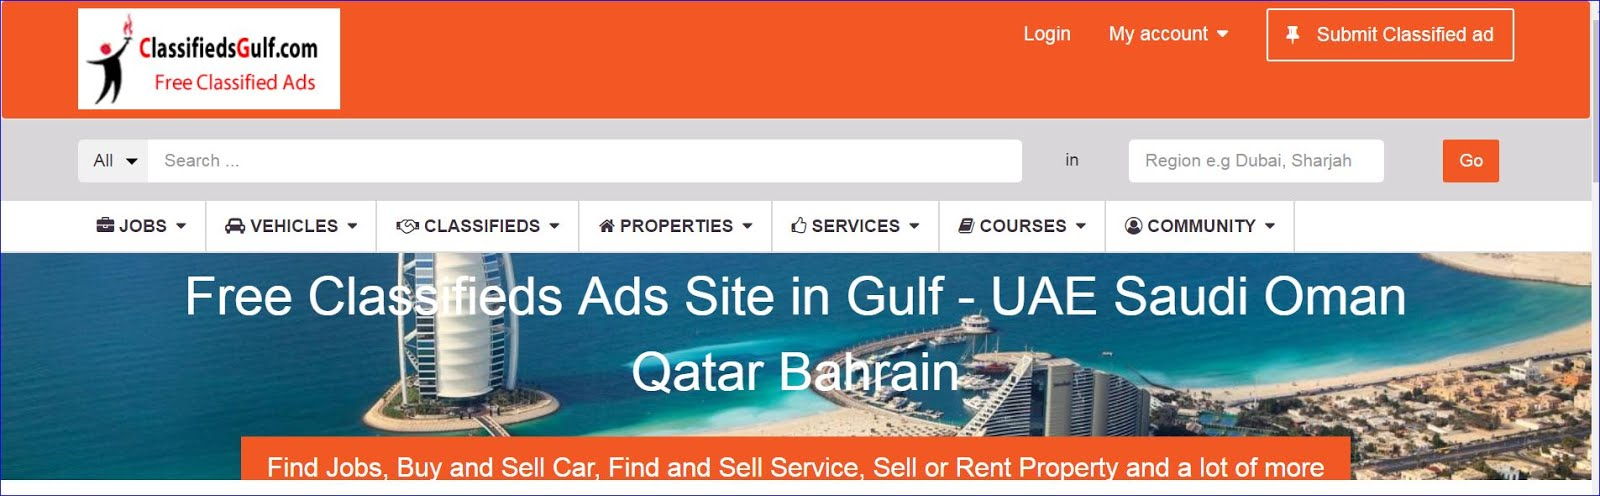 ClassifiedsGulf.com - UAE largest Free Classifieds Ads. Buy and Sell anything free